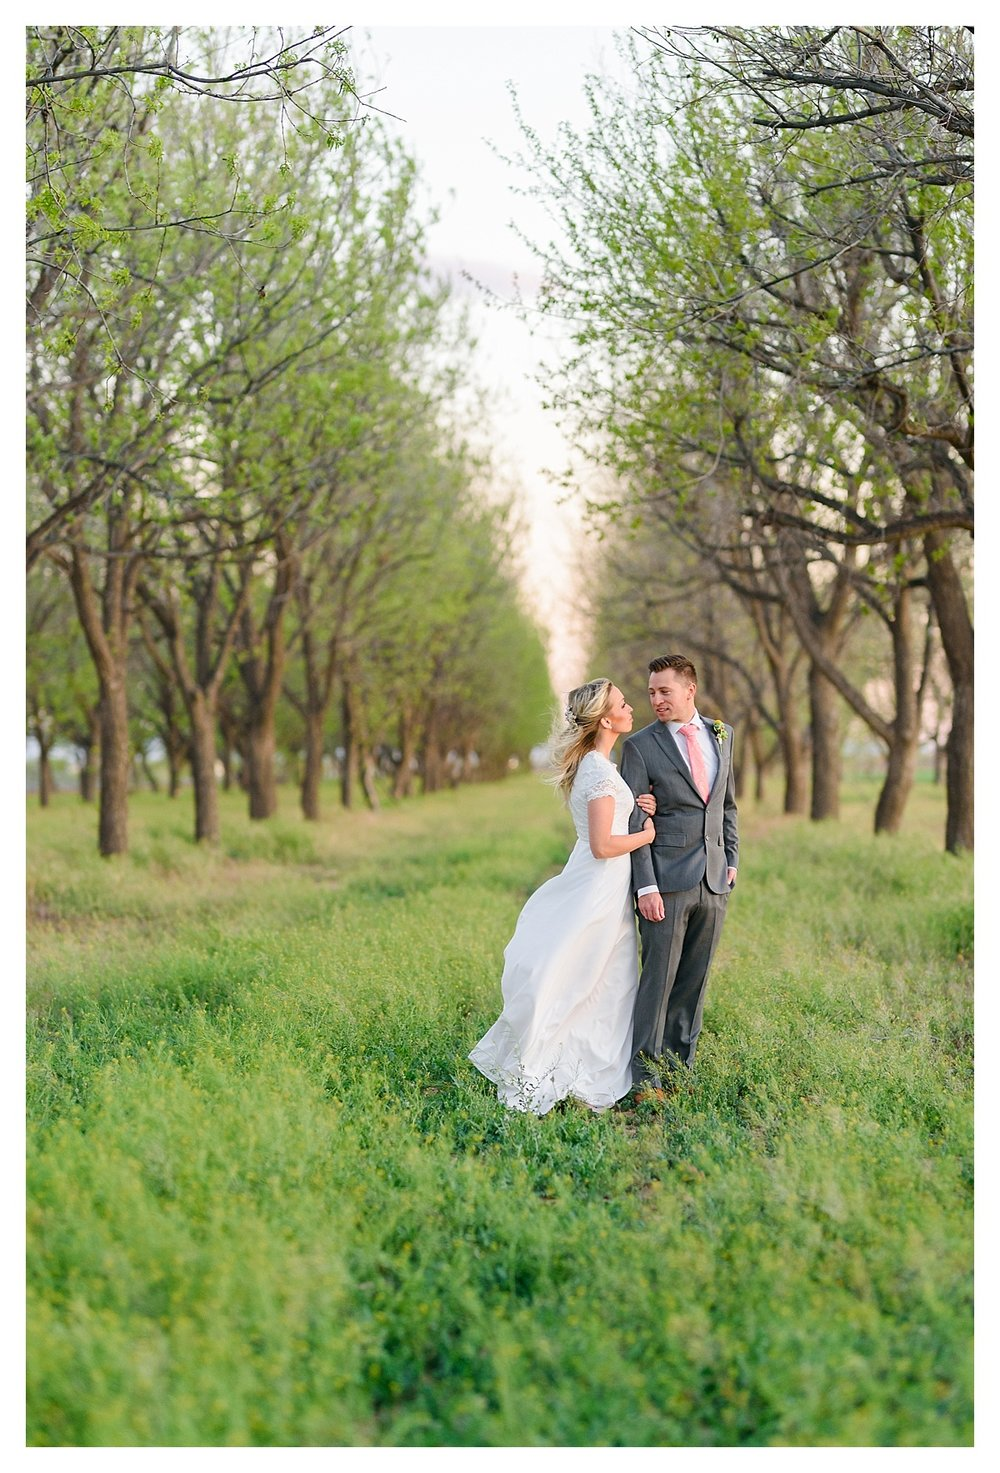 Deming New Mexico Wedding Portrait Photographer_0798.jpg